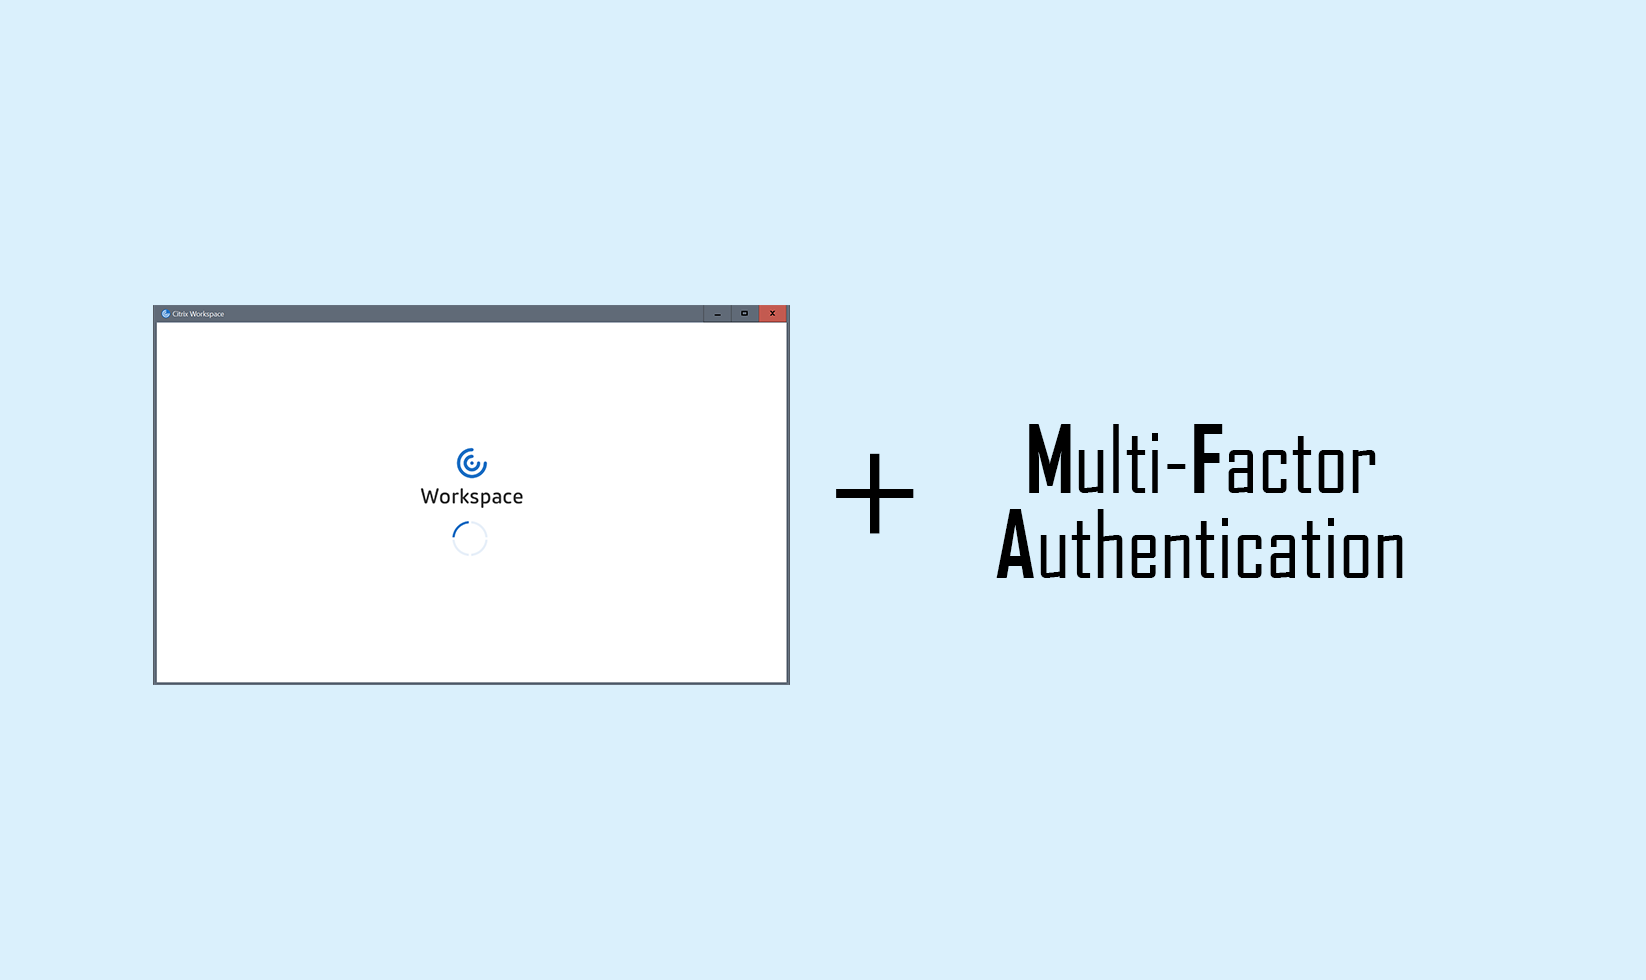 Lab: Part 39 – Configure Multi-Factor Authentication with Azure MFA